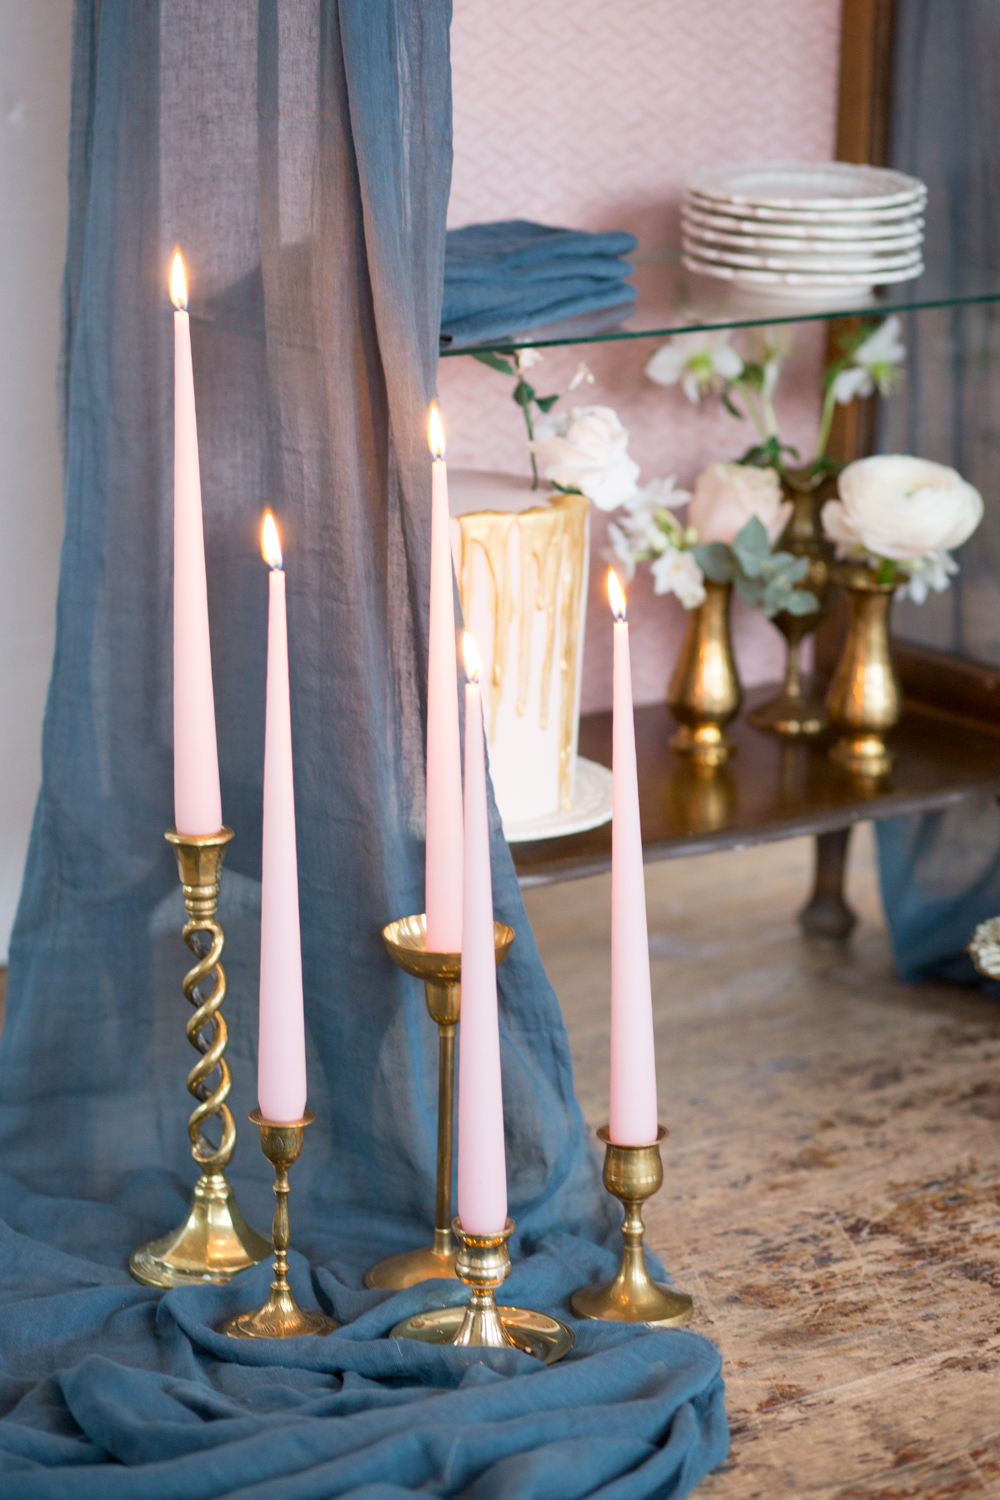 Brass Candlesticks: £4.00